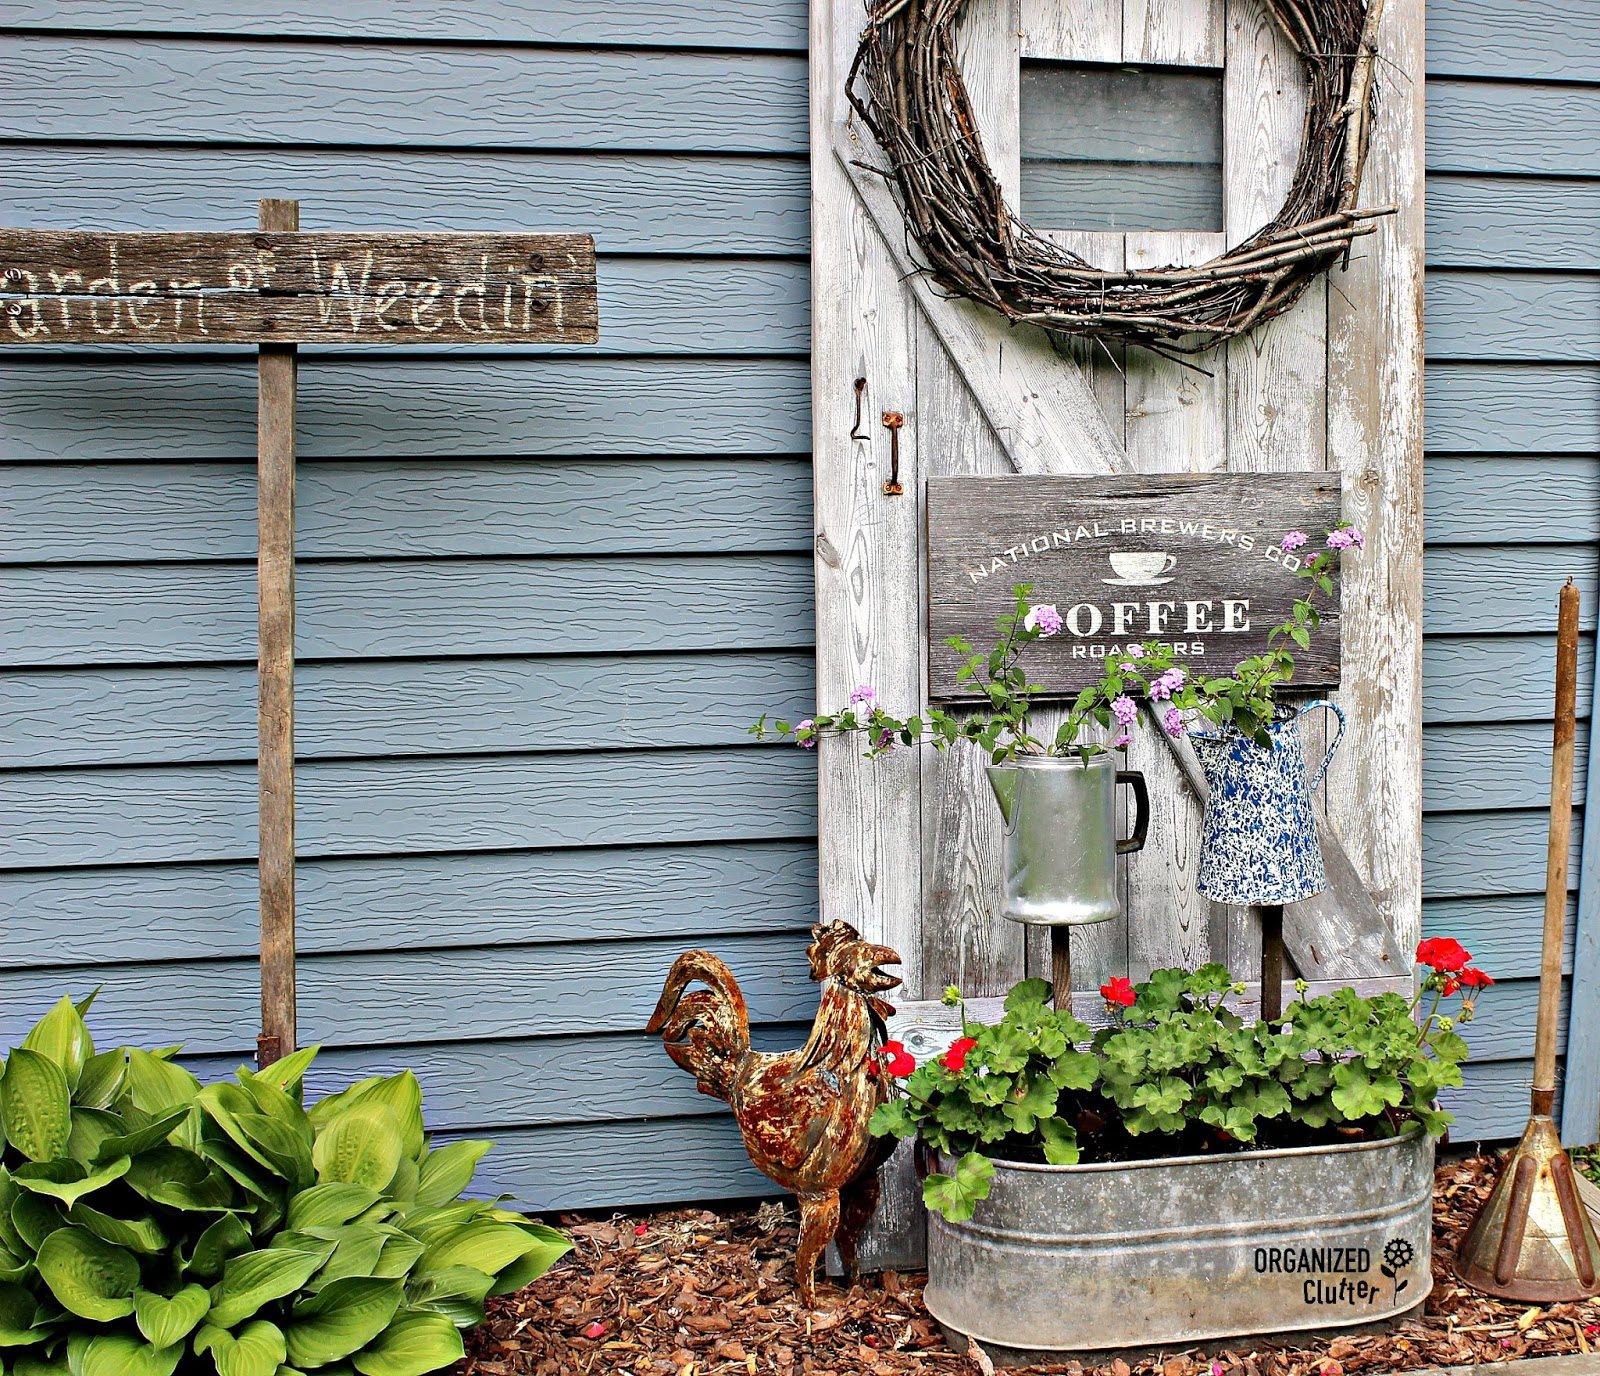 Red Rooster Coffee Garden Valley Changing Up The Junk Garden Vignettes Organized Clutter